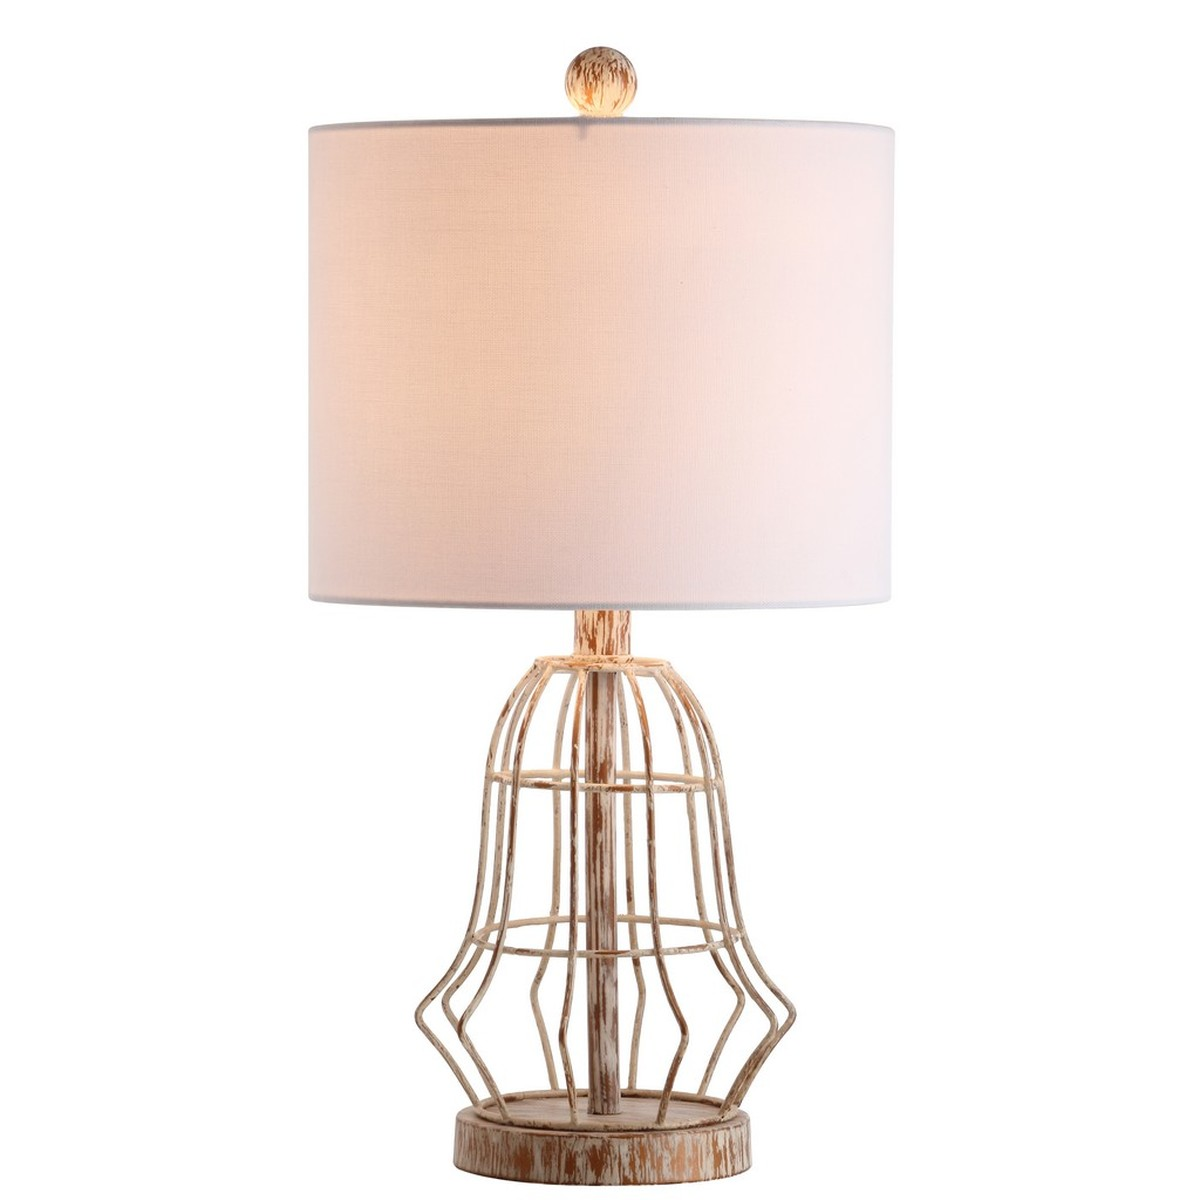 Rustic glow to any living room with this modern table lamp inspired by the warmth and character of vintage industrial style its antique metal finish